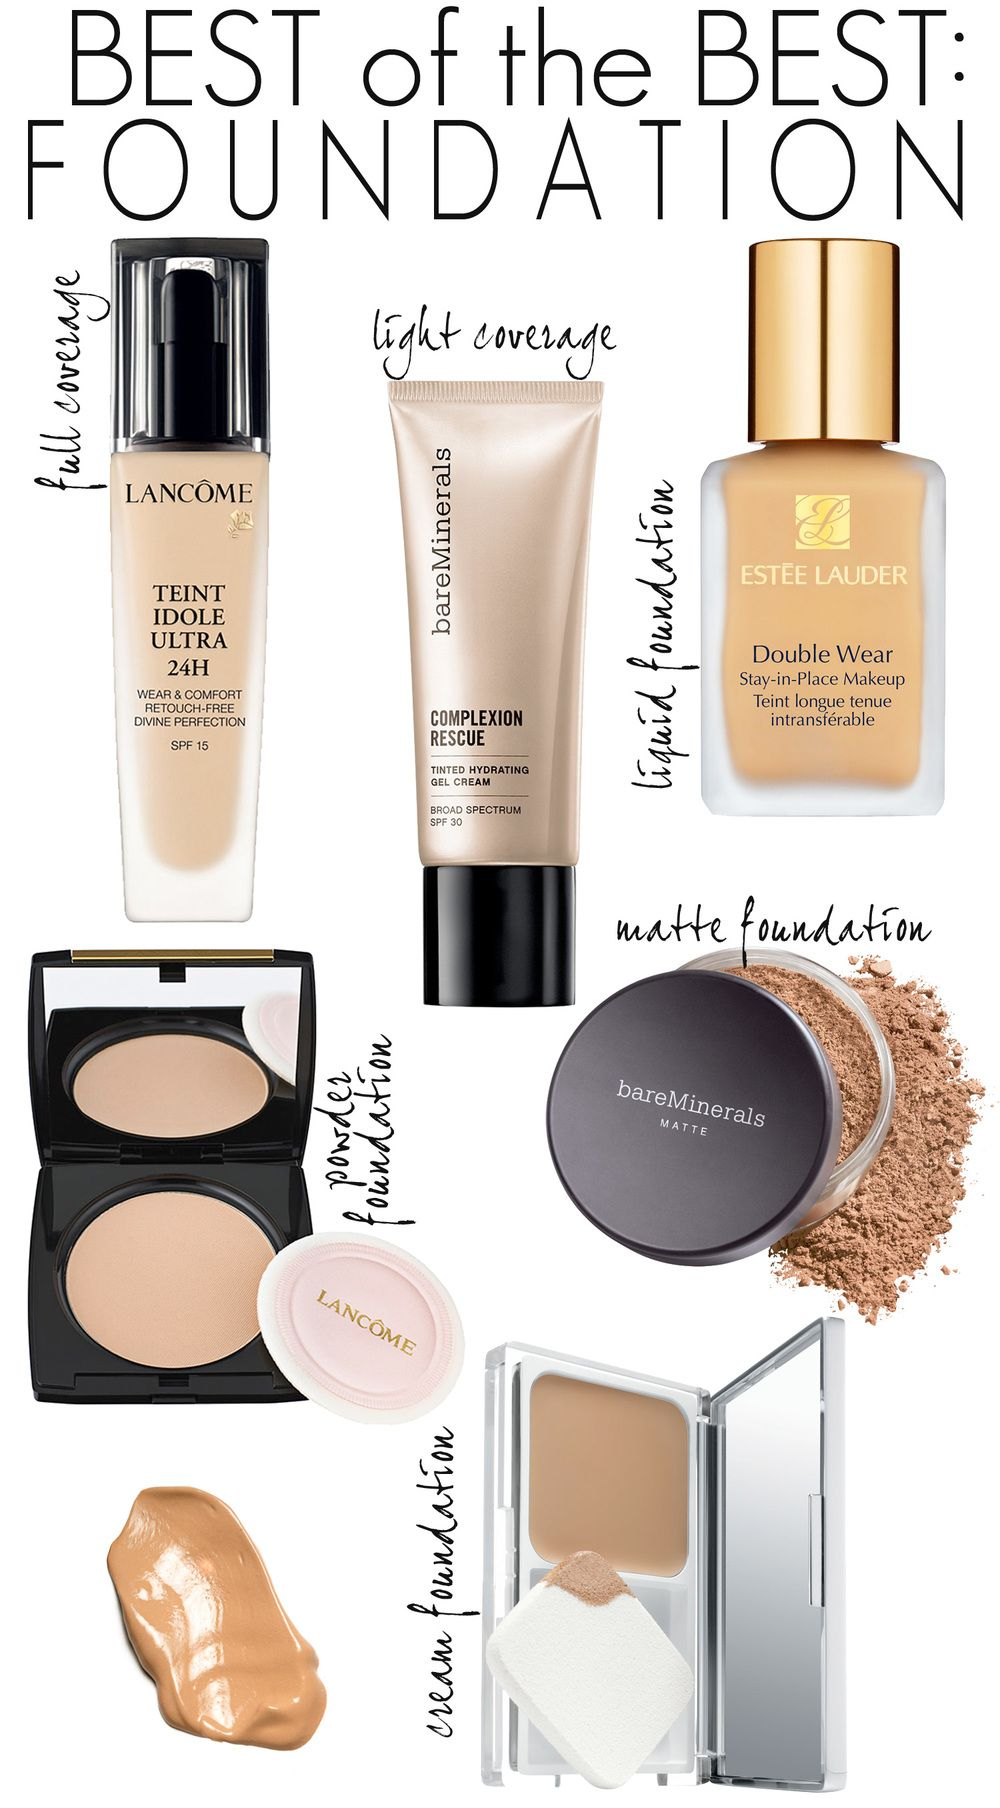 Best of the Best Department Store Foundations. Best